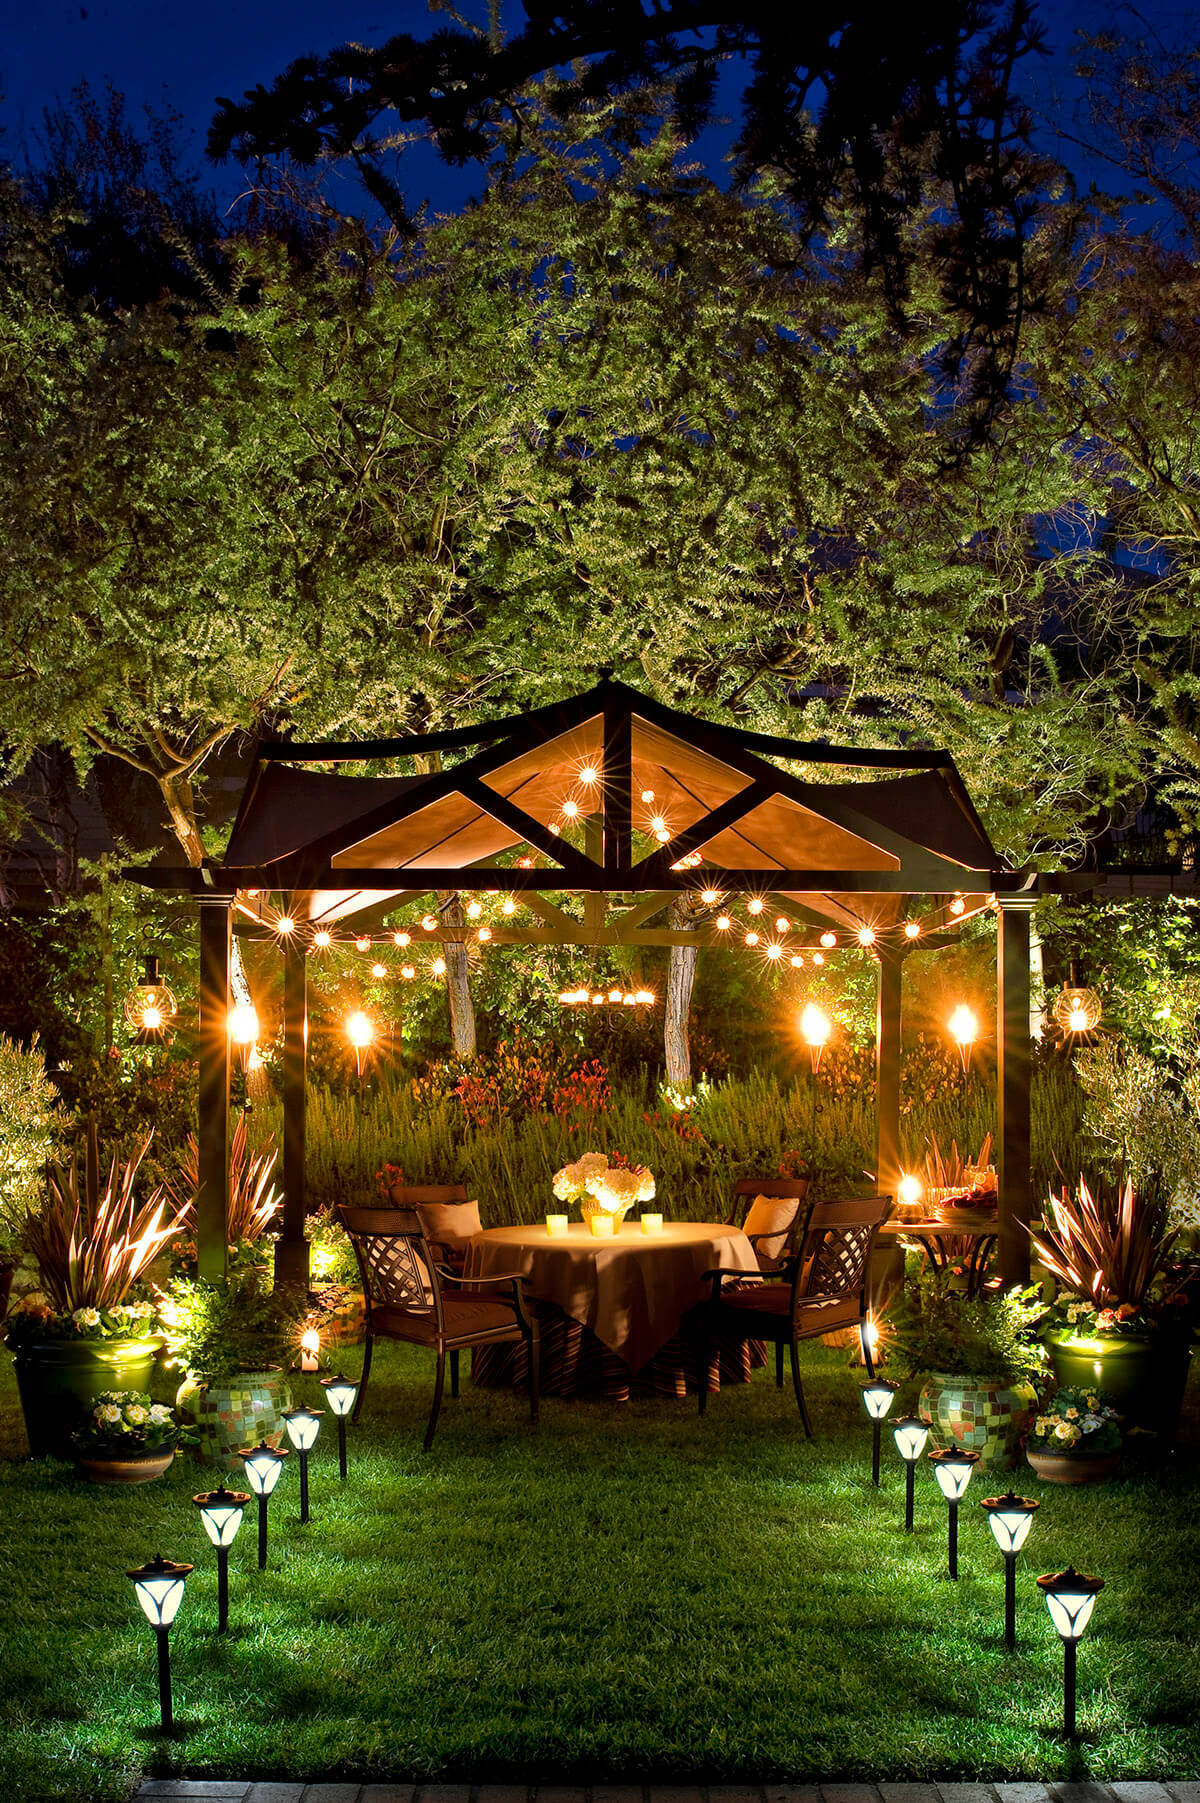 27 Best Backyard Lighting Ideas and Designs for 2017 on Best Yard Design id=69355